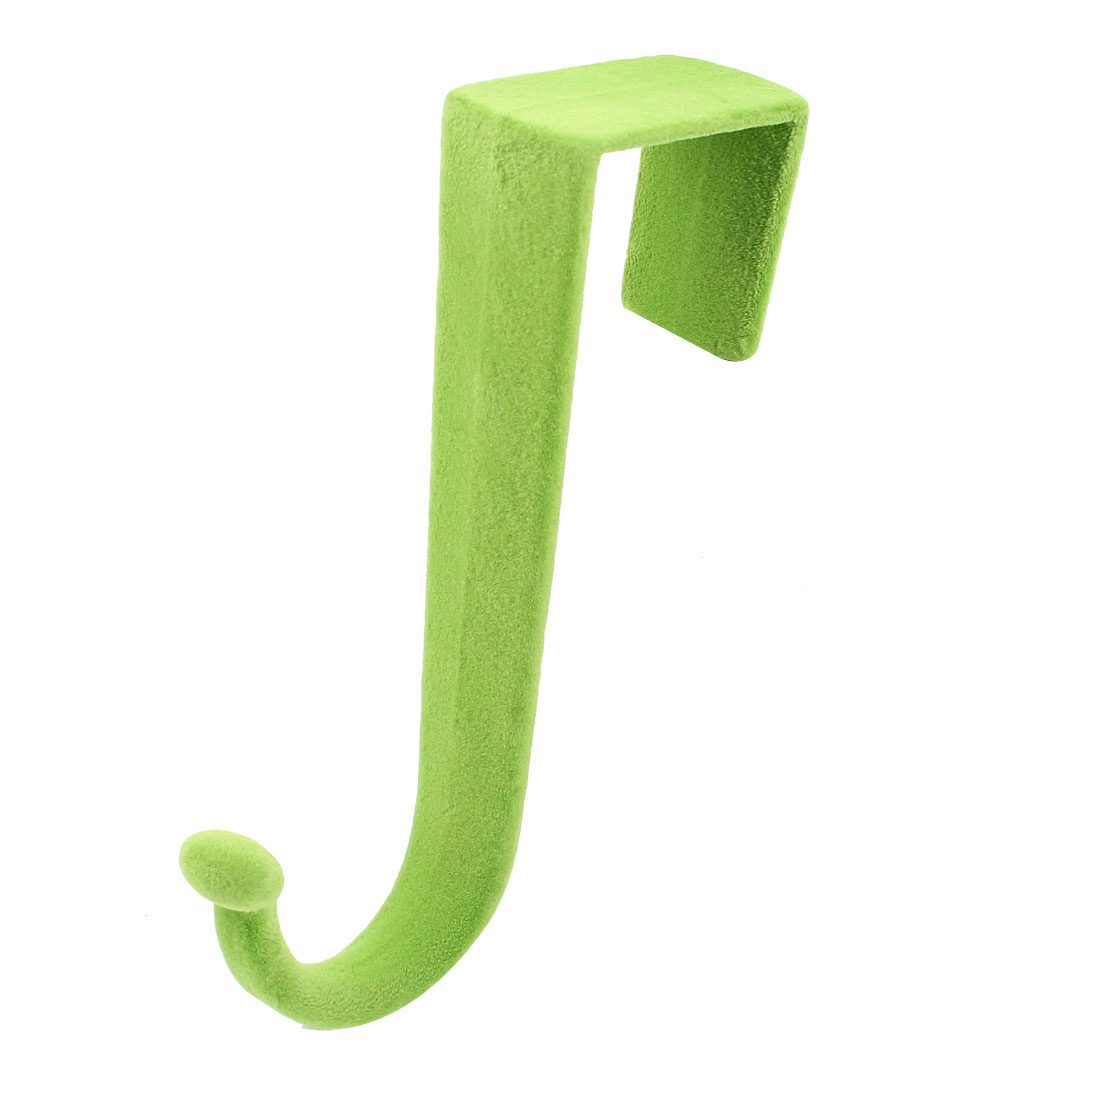 Green Plush Coated Plastic Over Wardrobe Doors Hooks Hanger Storage Holder